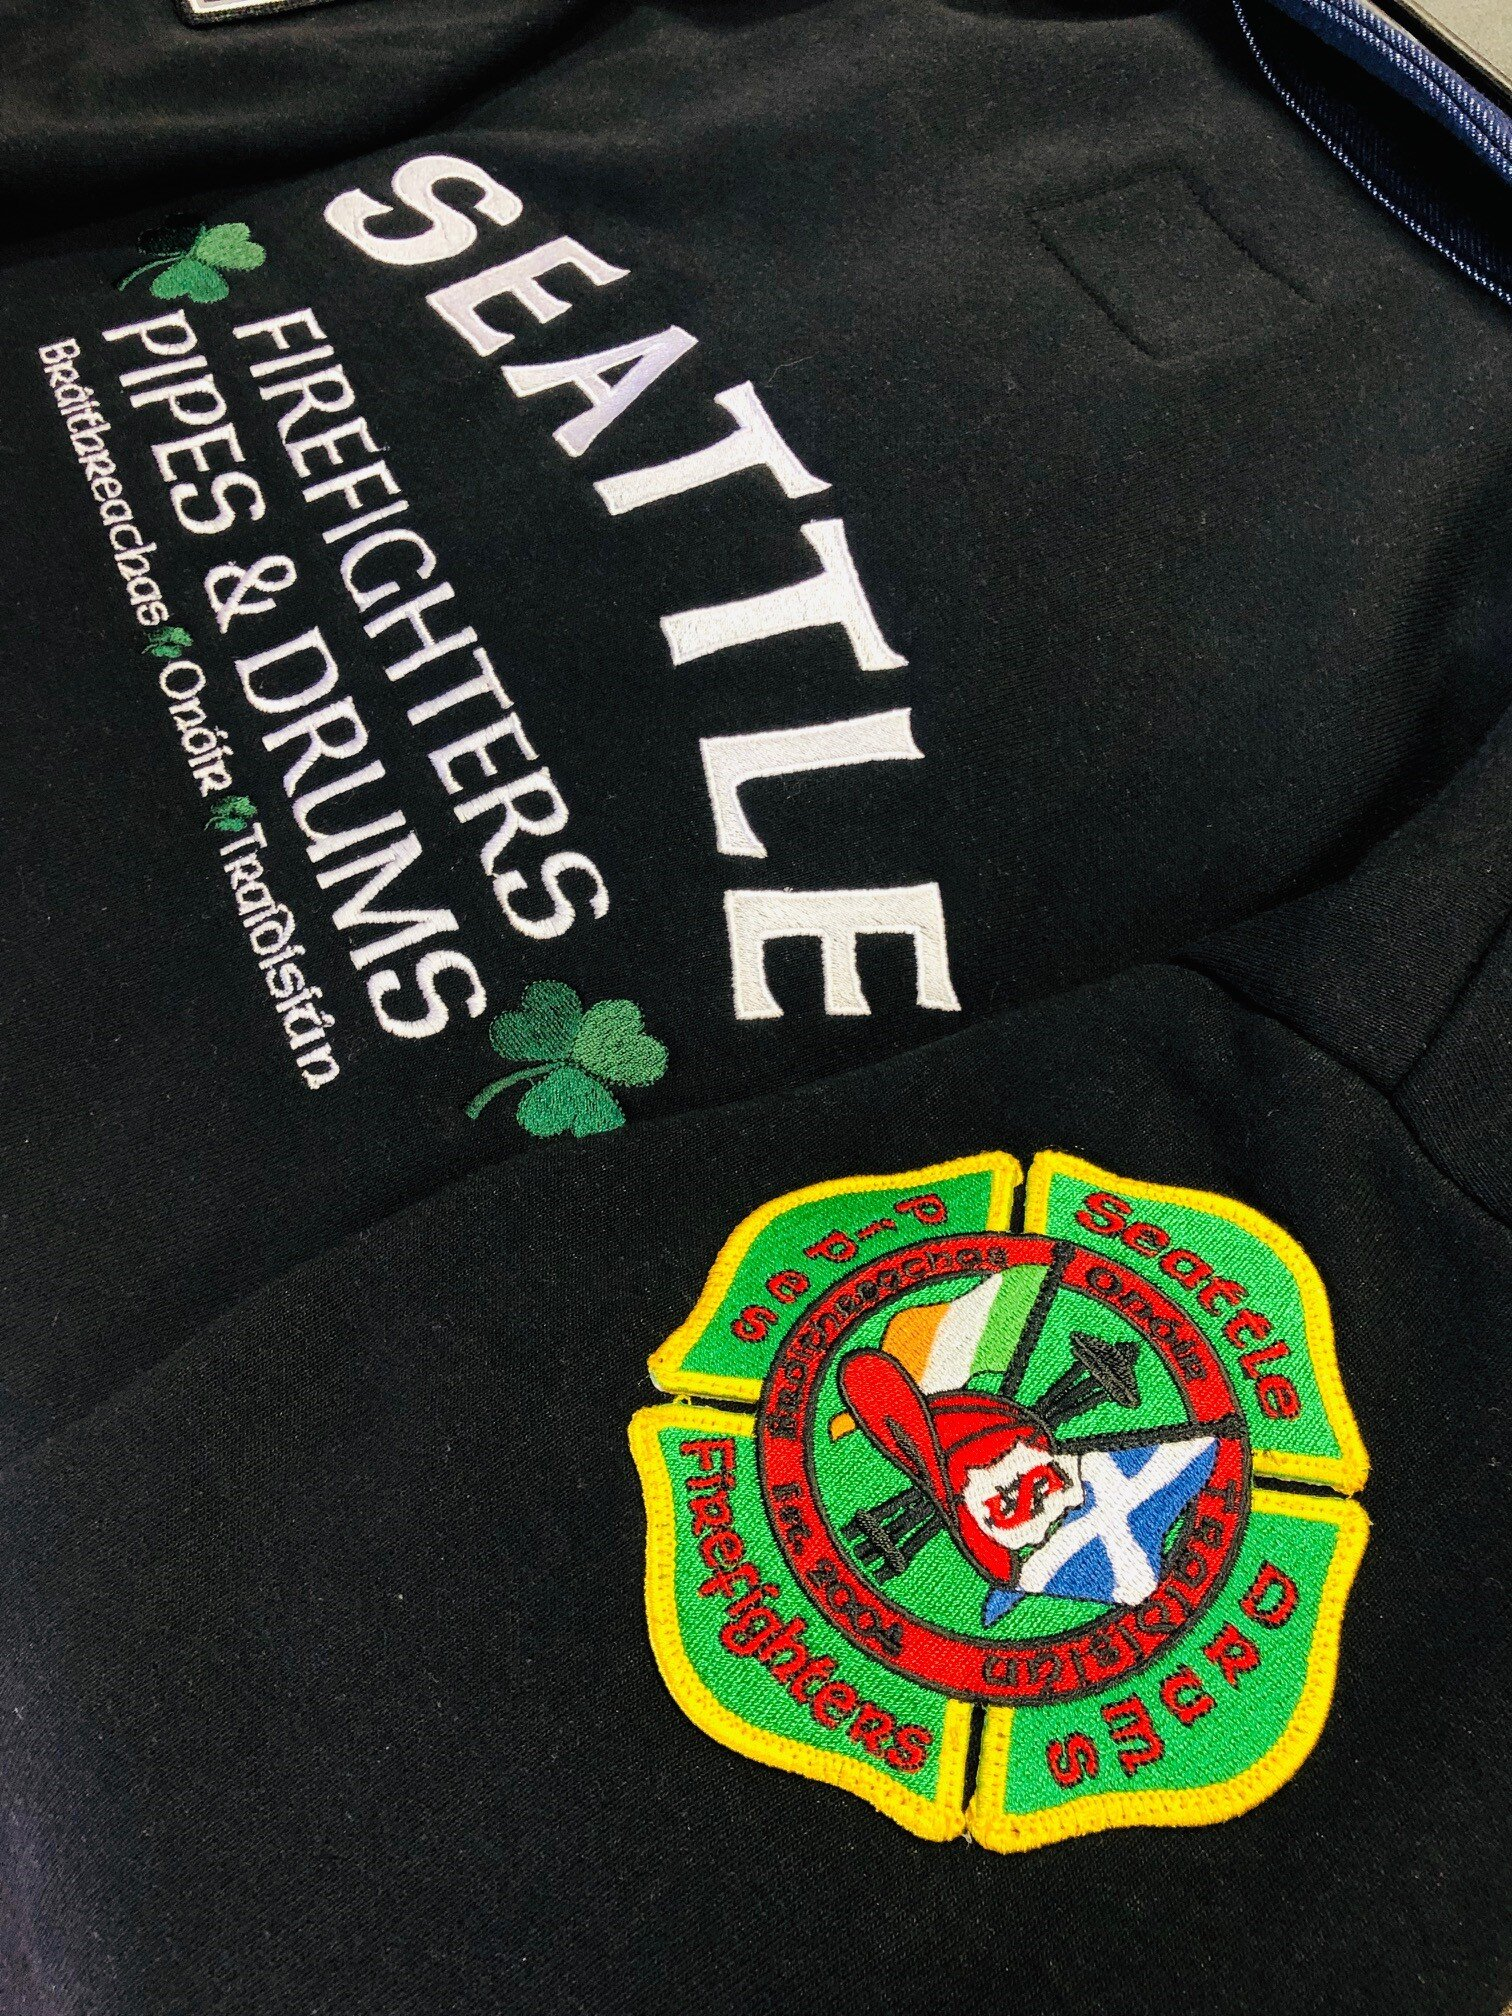 logounltd_laser_etching_embroidery_screen_printing_apparel_uniform_custom_tshirts_t_shirt_kirkland_bellevue_seattle_redmond_woodinville_branded_merchandise_promotional_products_logo_unltd_firefighters_pipes_drums (3).jpg